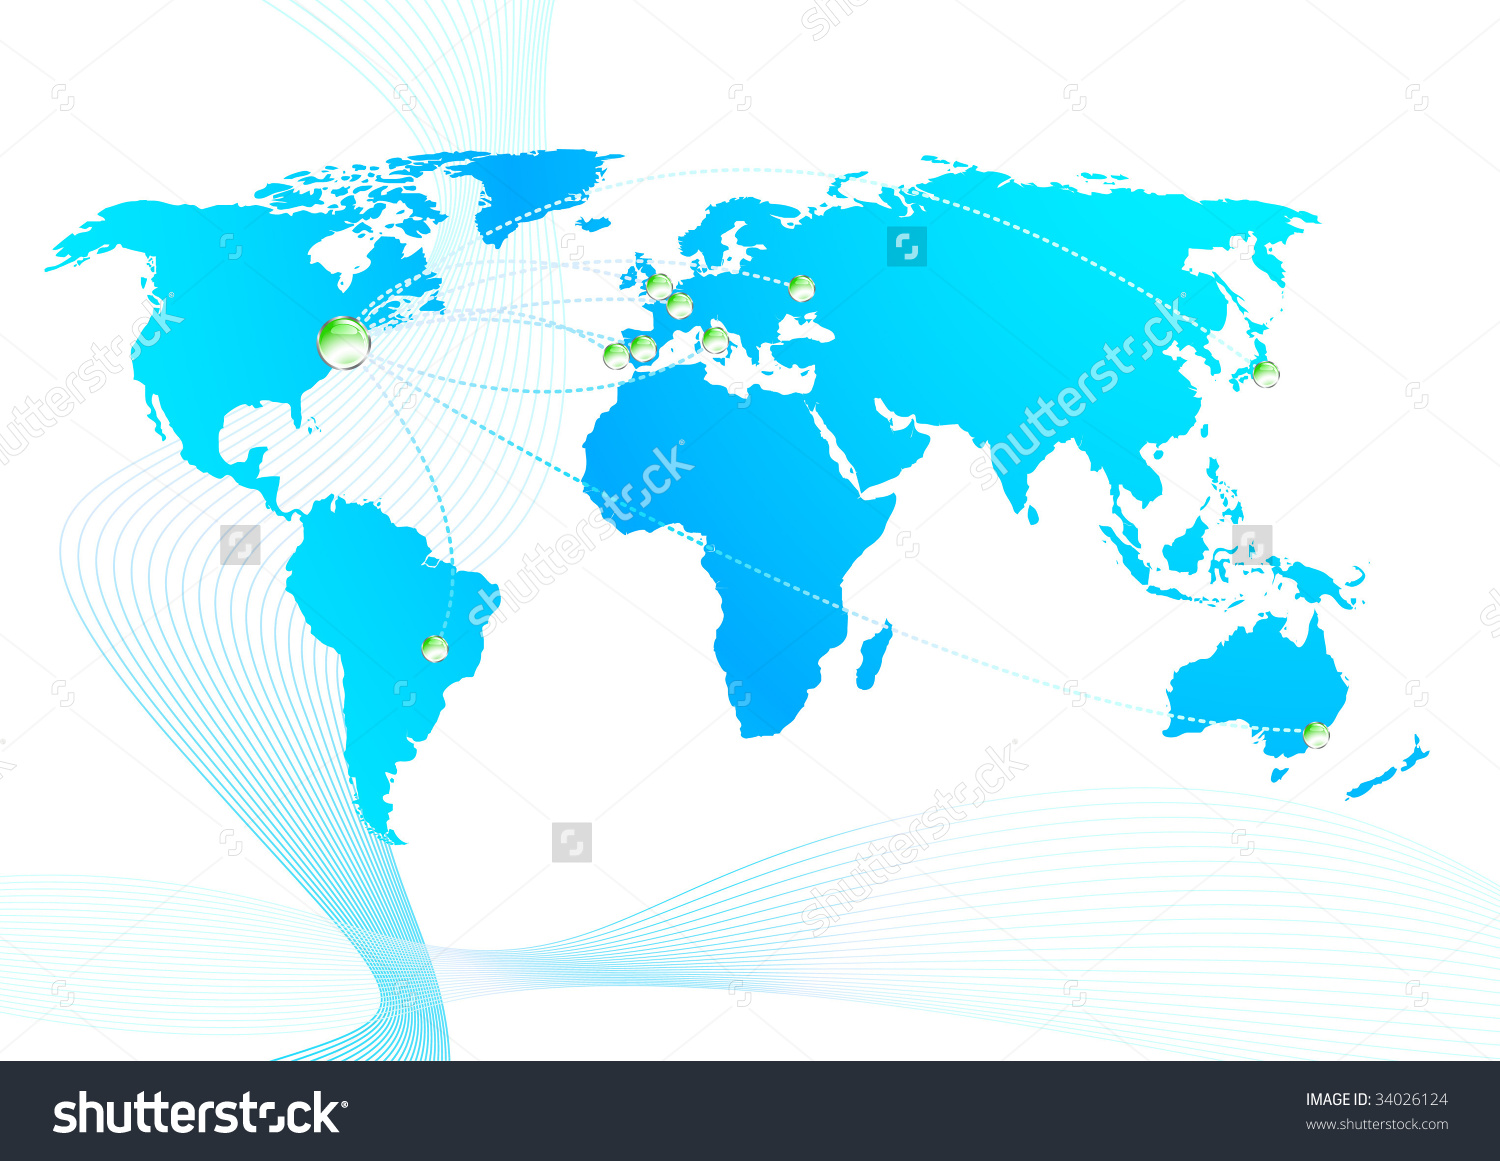 Stock in trade clipart banner transparent Global Trade Relations; Clip-Art Stock Vector Illustration ... banner transparent